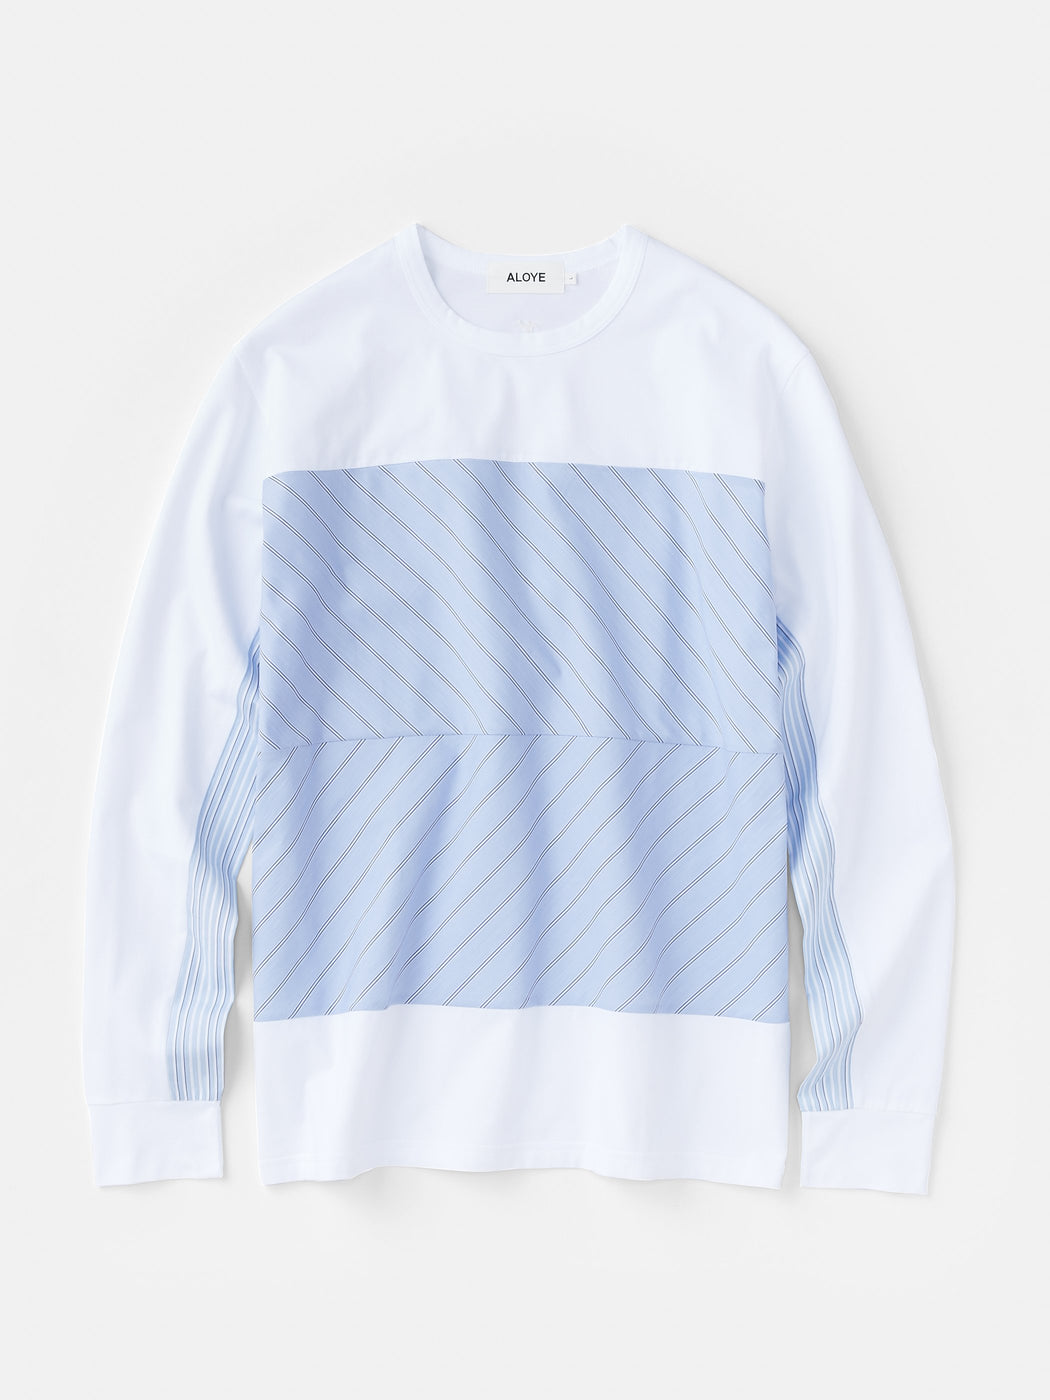 ALOYE Shirt Fabrics Men's Long Sleeve T-shirt White-Blue Stripe